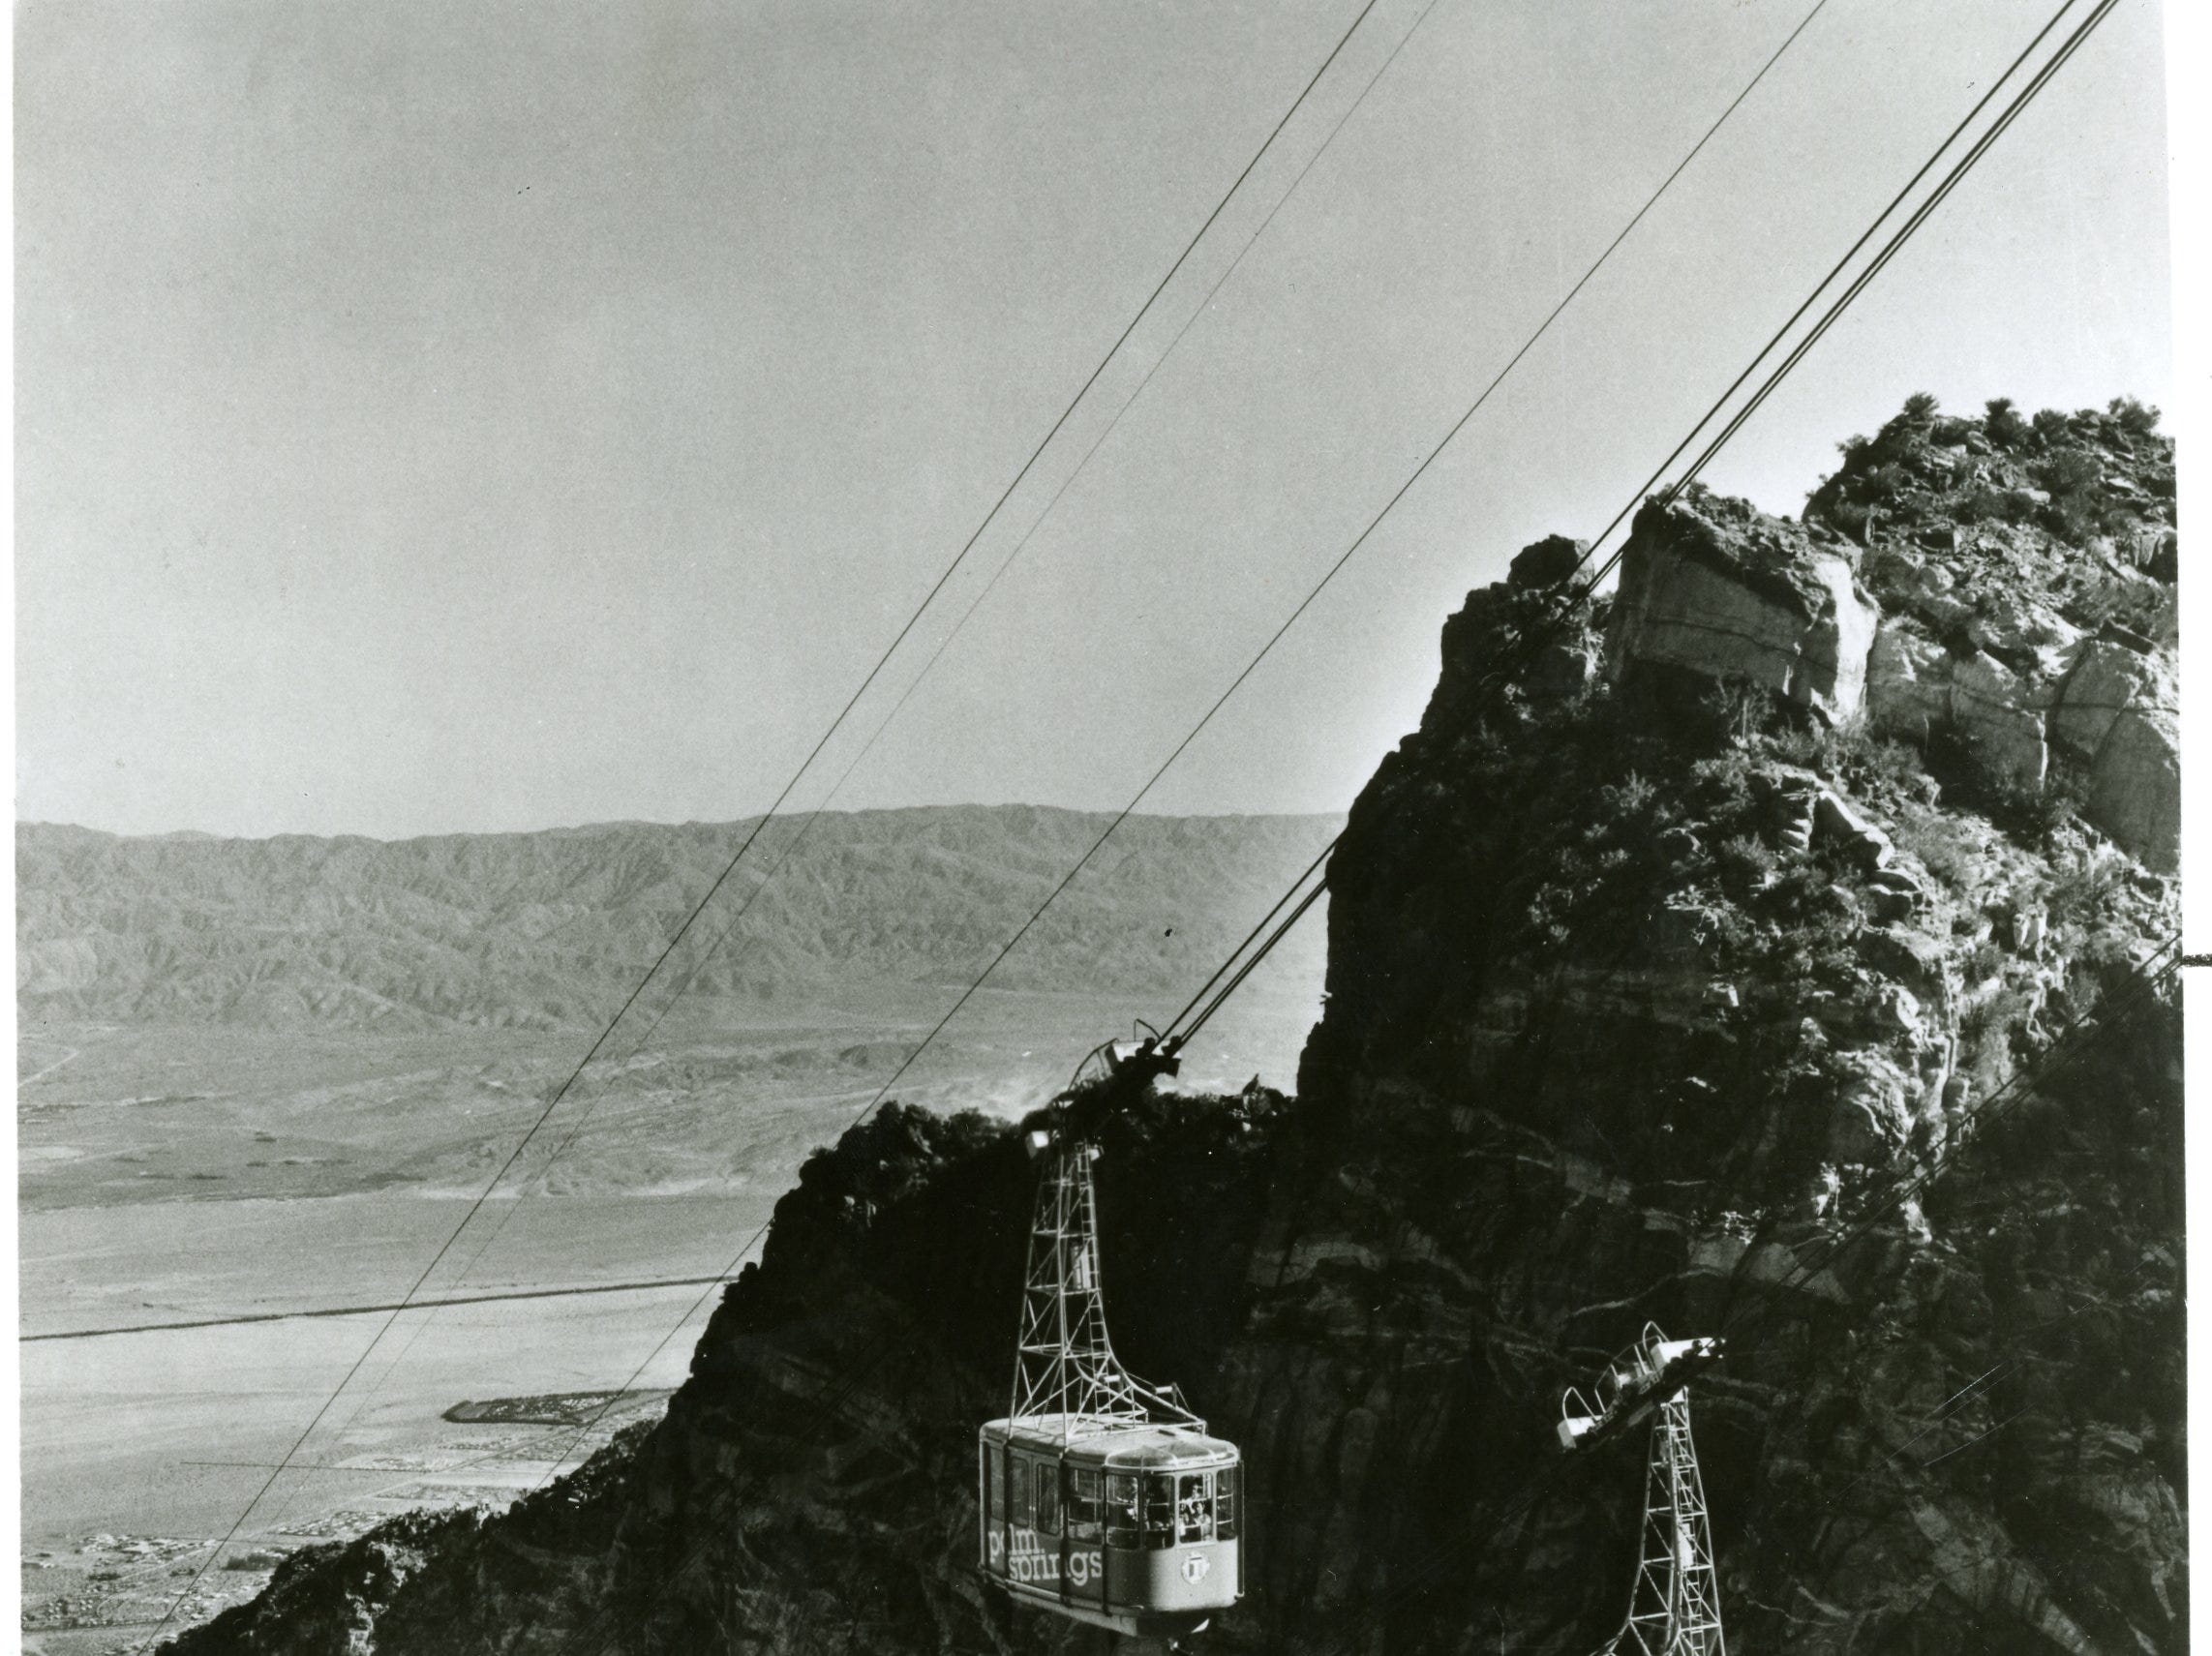 Two early tram cars pass en route to their respective stations in this undated Palm Springs Aerial Tram photo.